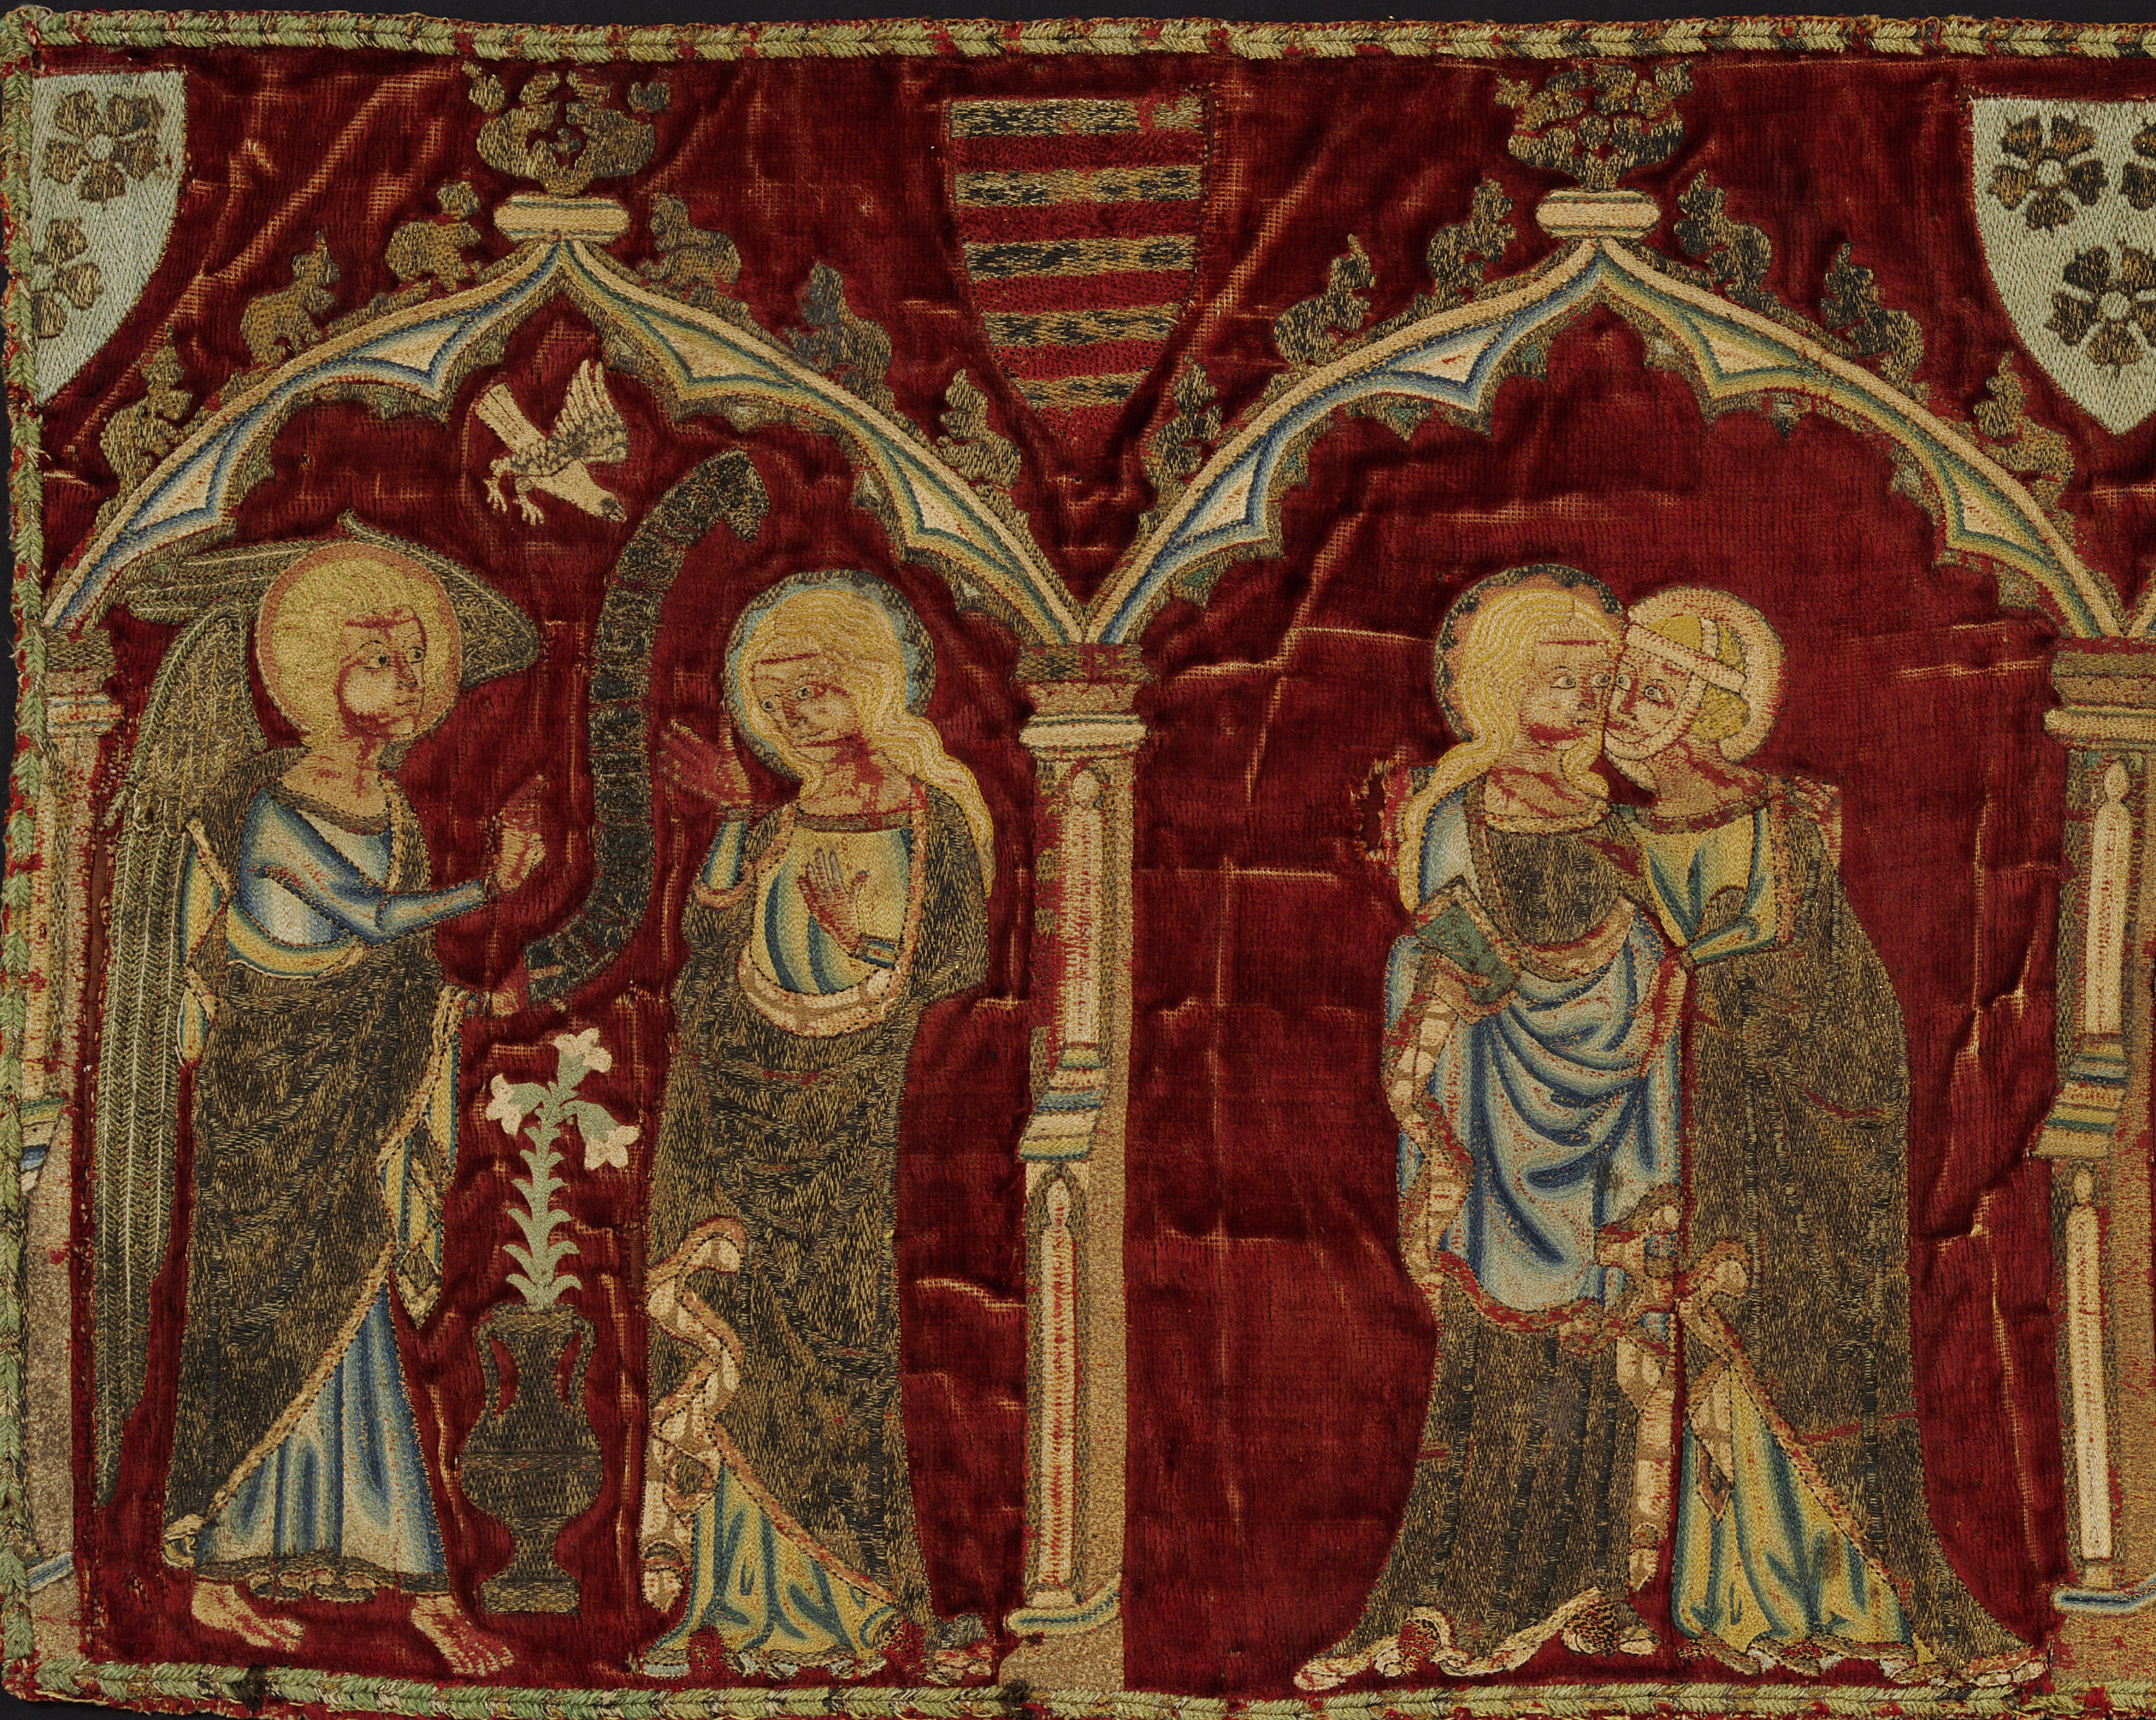 Panel depicting scenes from the life of the Virgin Mary, 1335-45.